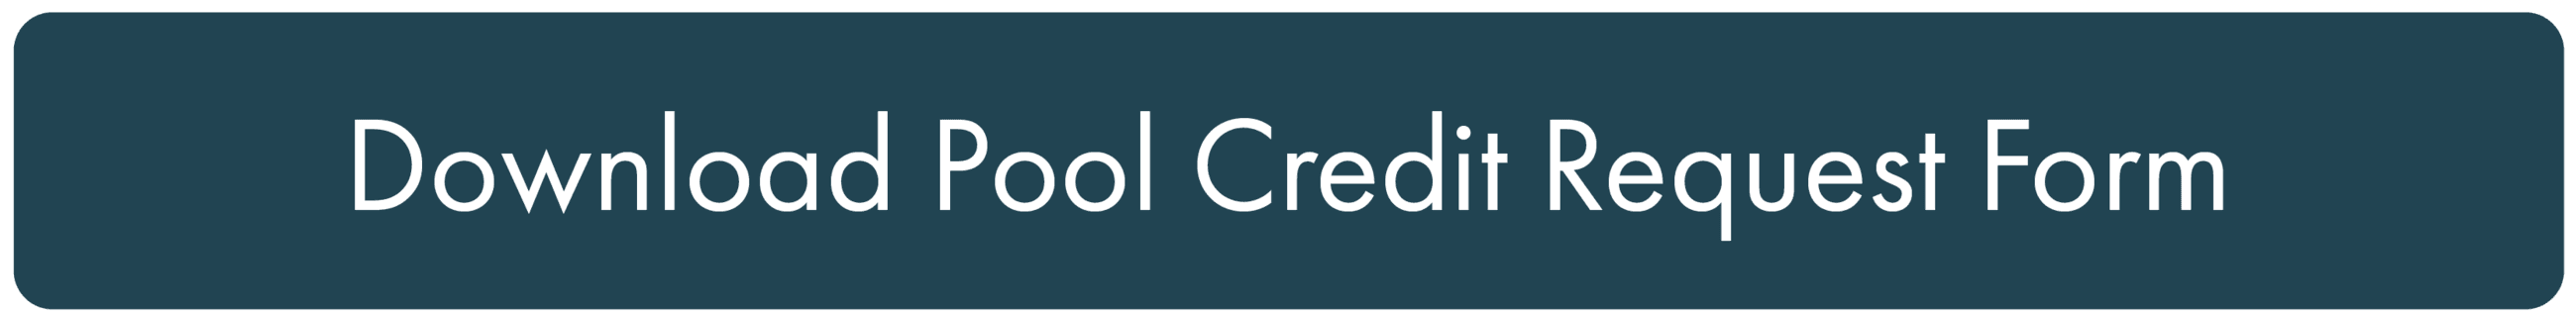 Download Pool Credit Request Form Opens in new window